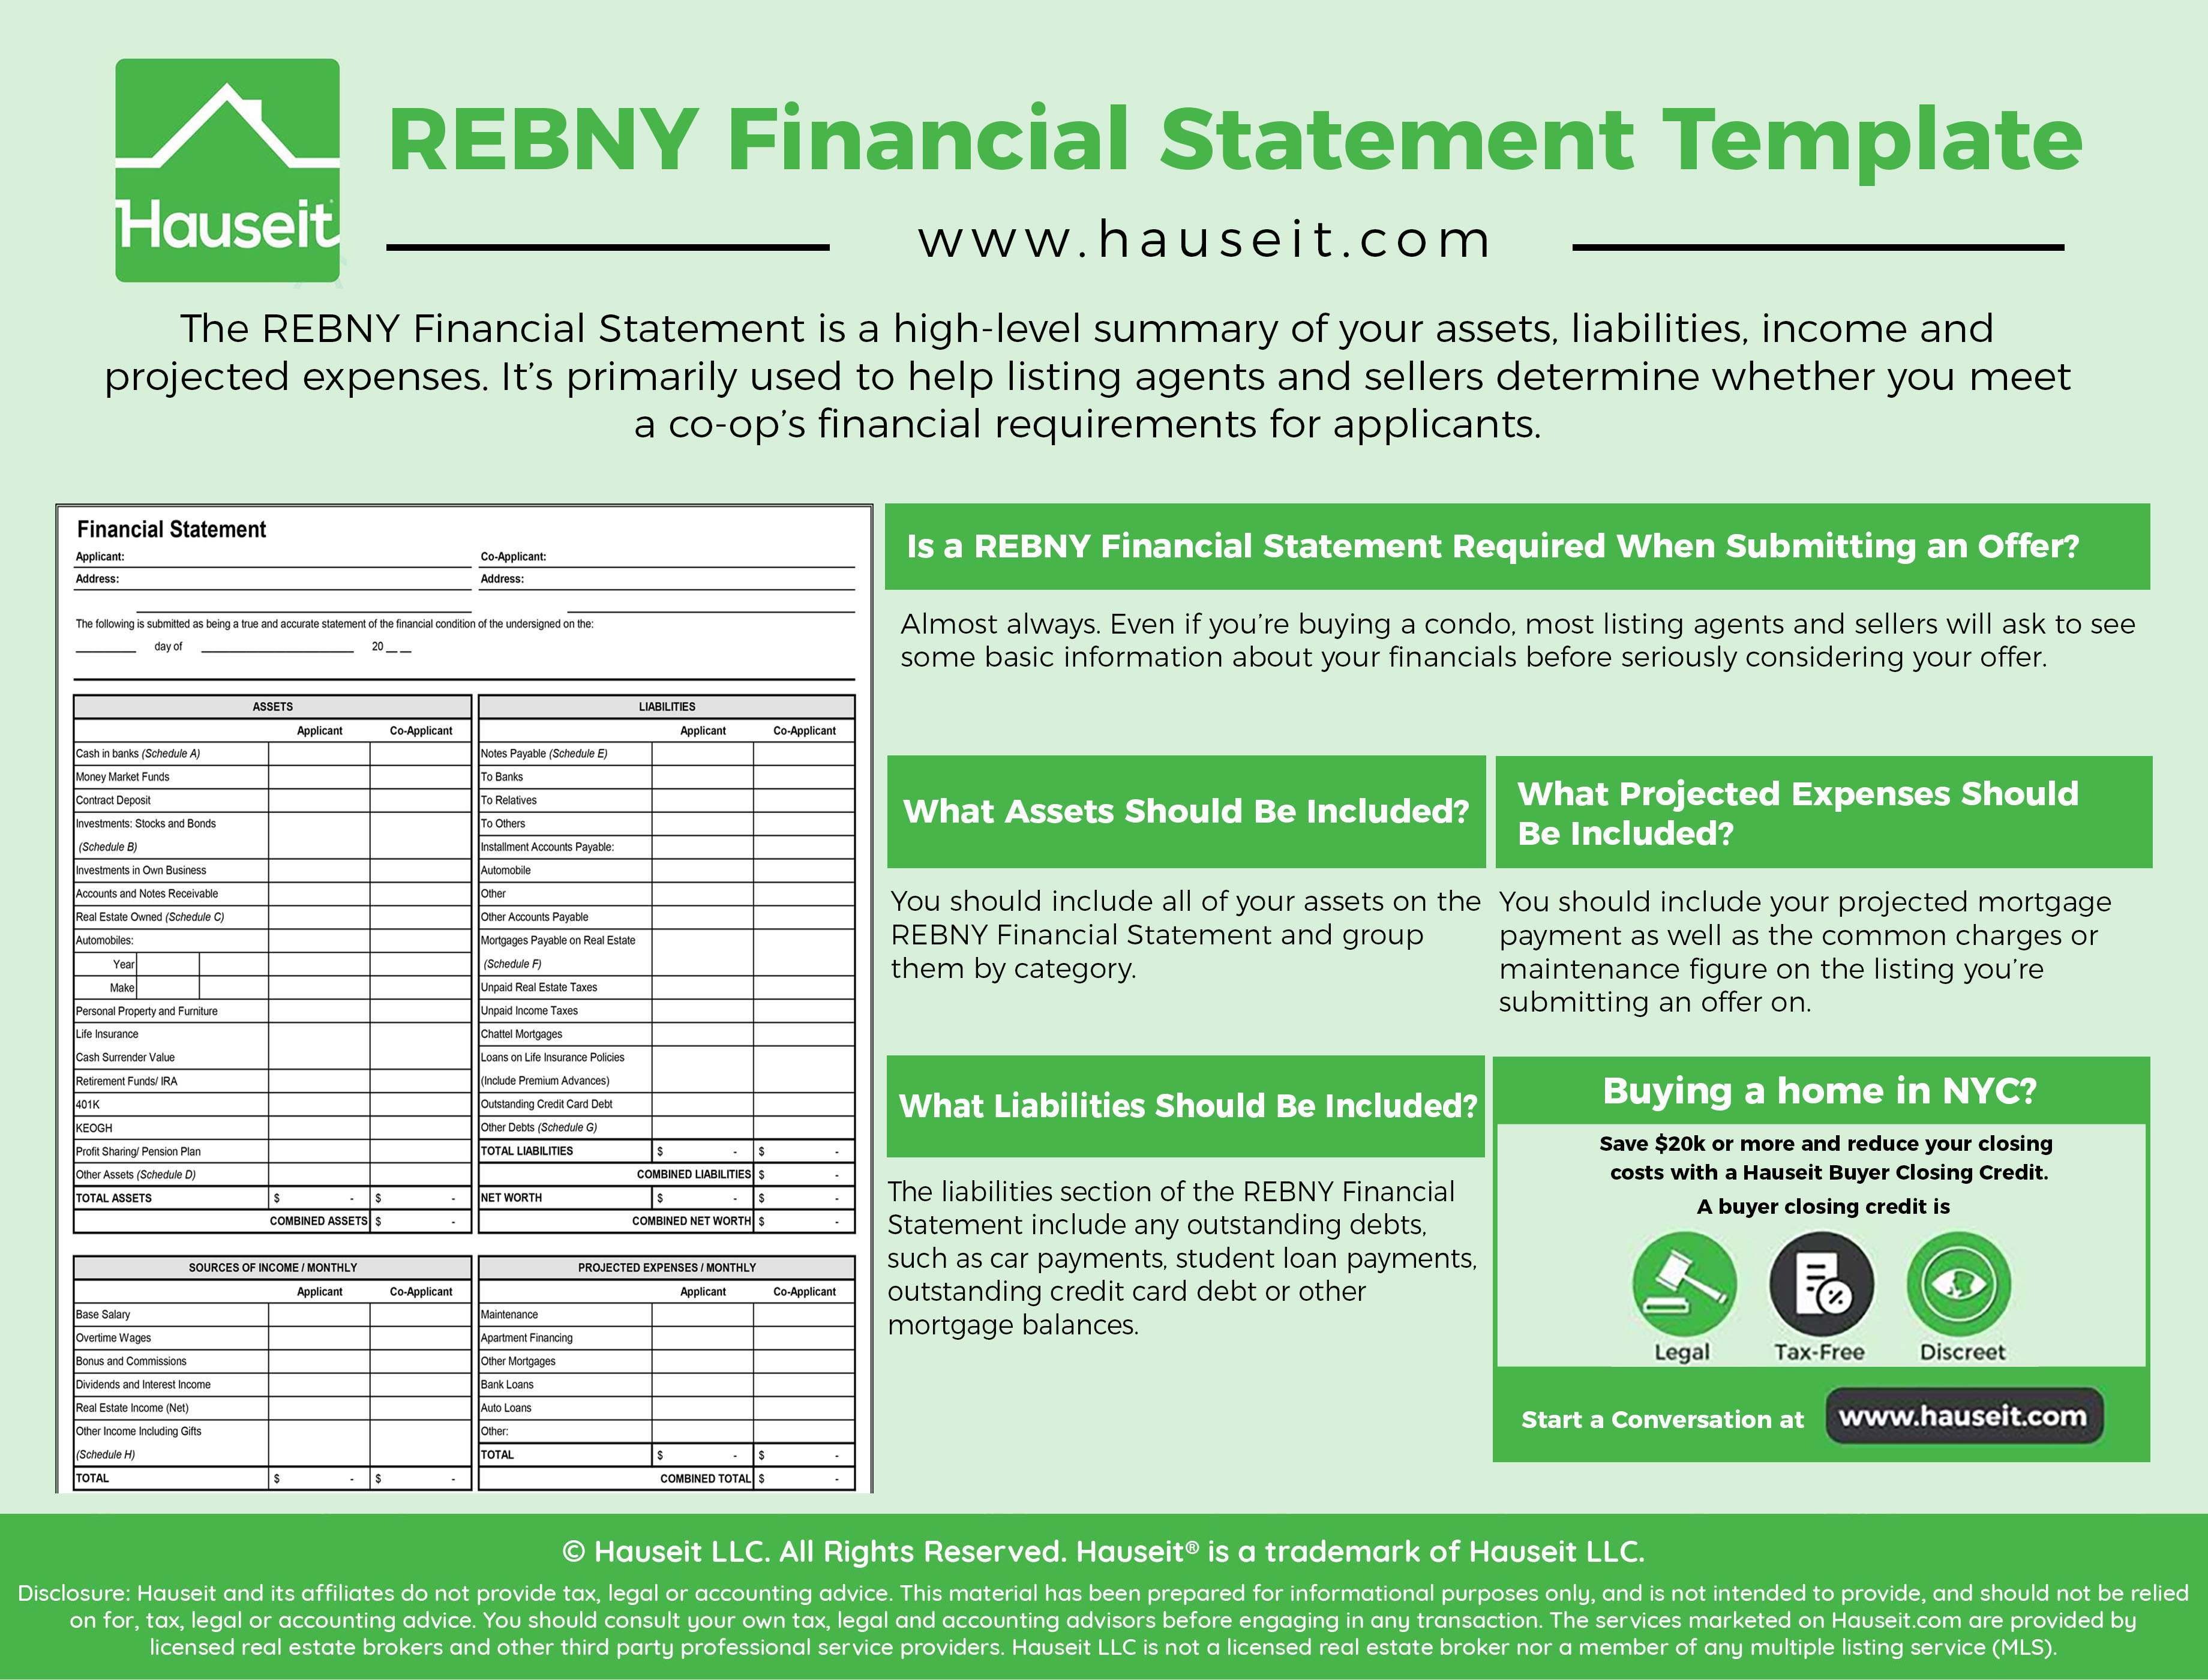 rebny financial statement template nyc hauseit